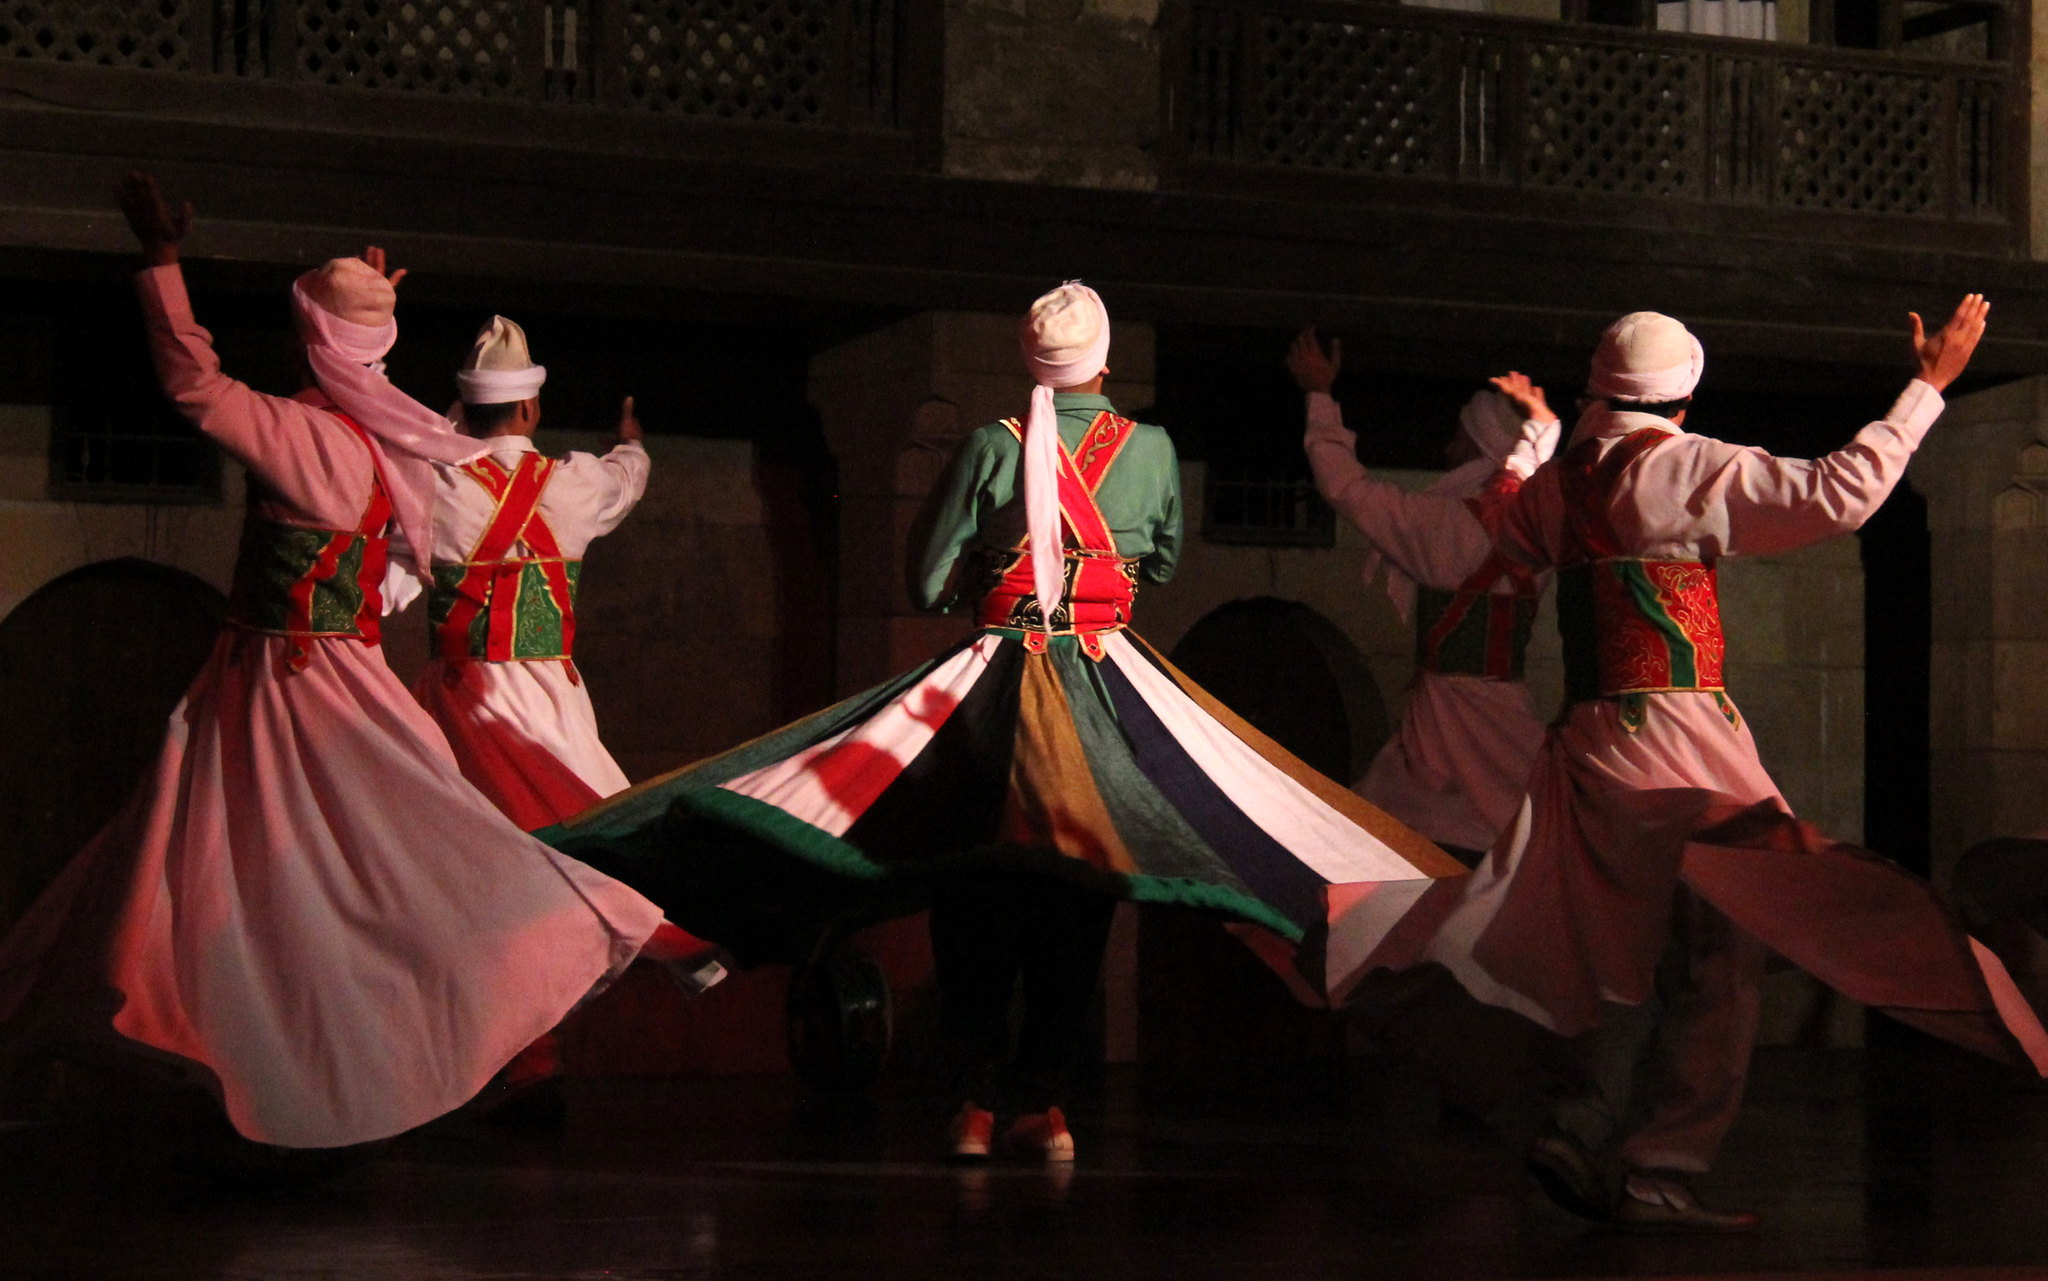 Tanoura whirling was introduced by the Fatimids